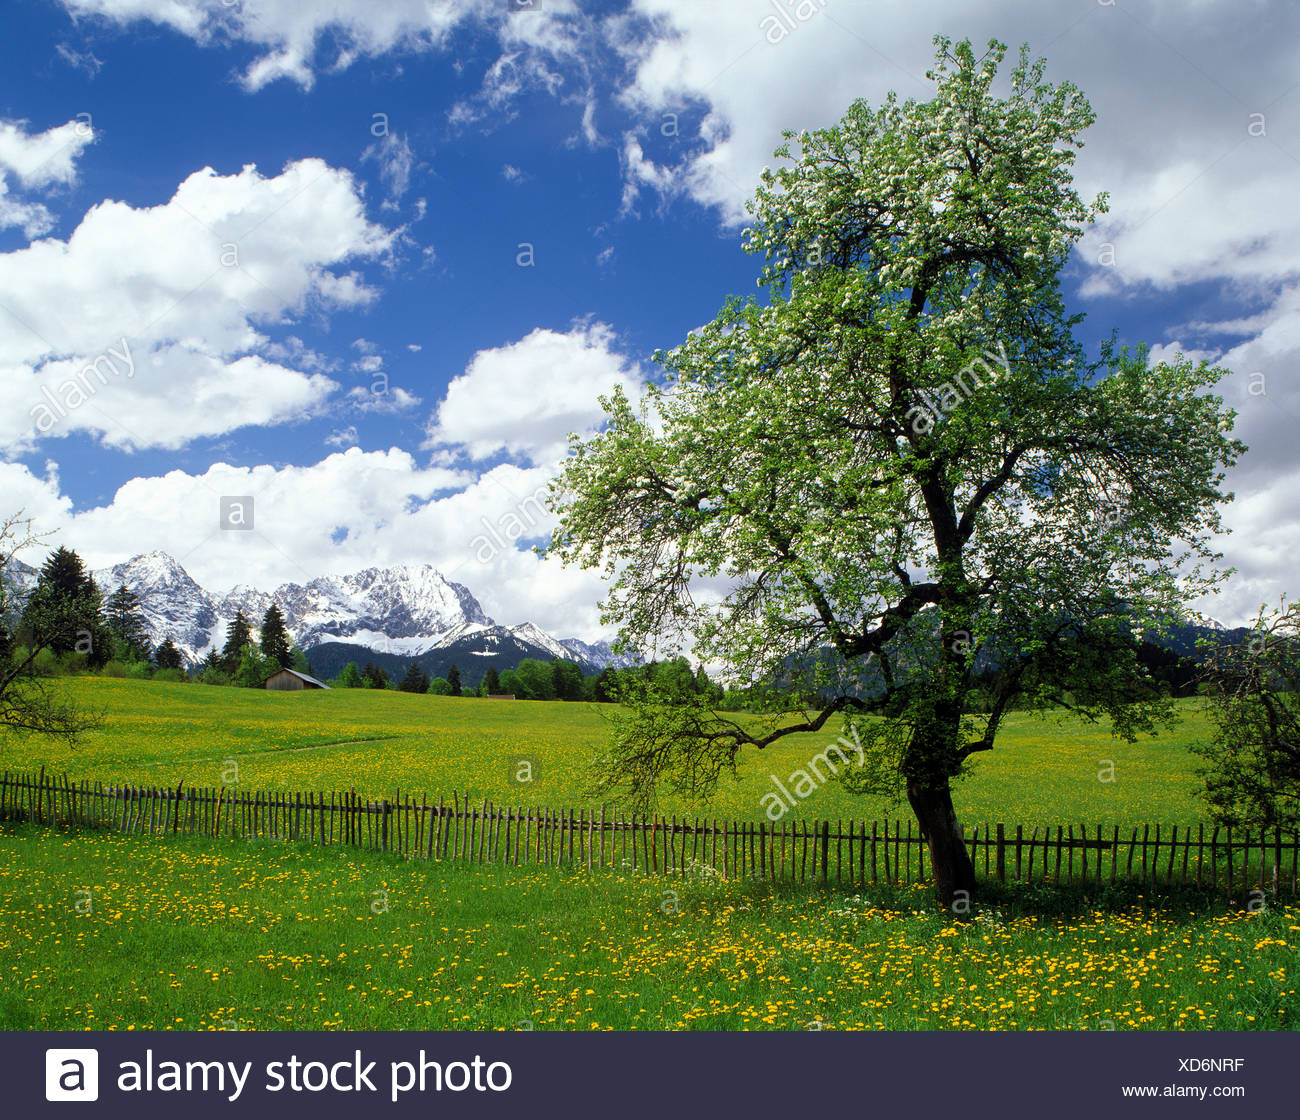 Karwendelgebirge range from the meadows near Kruen, Upper Bavaria, Germany, Europe - Stock Image